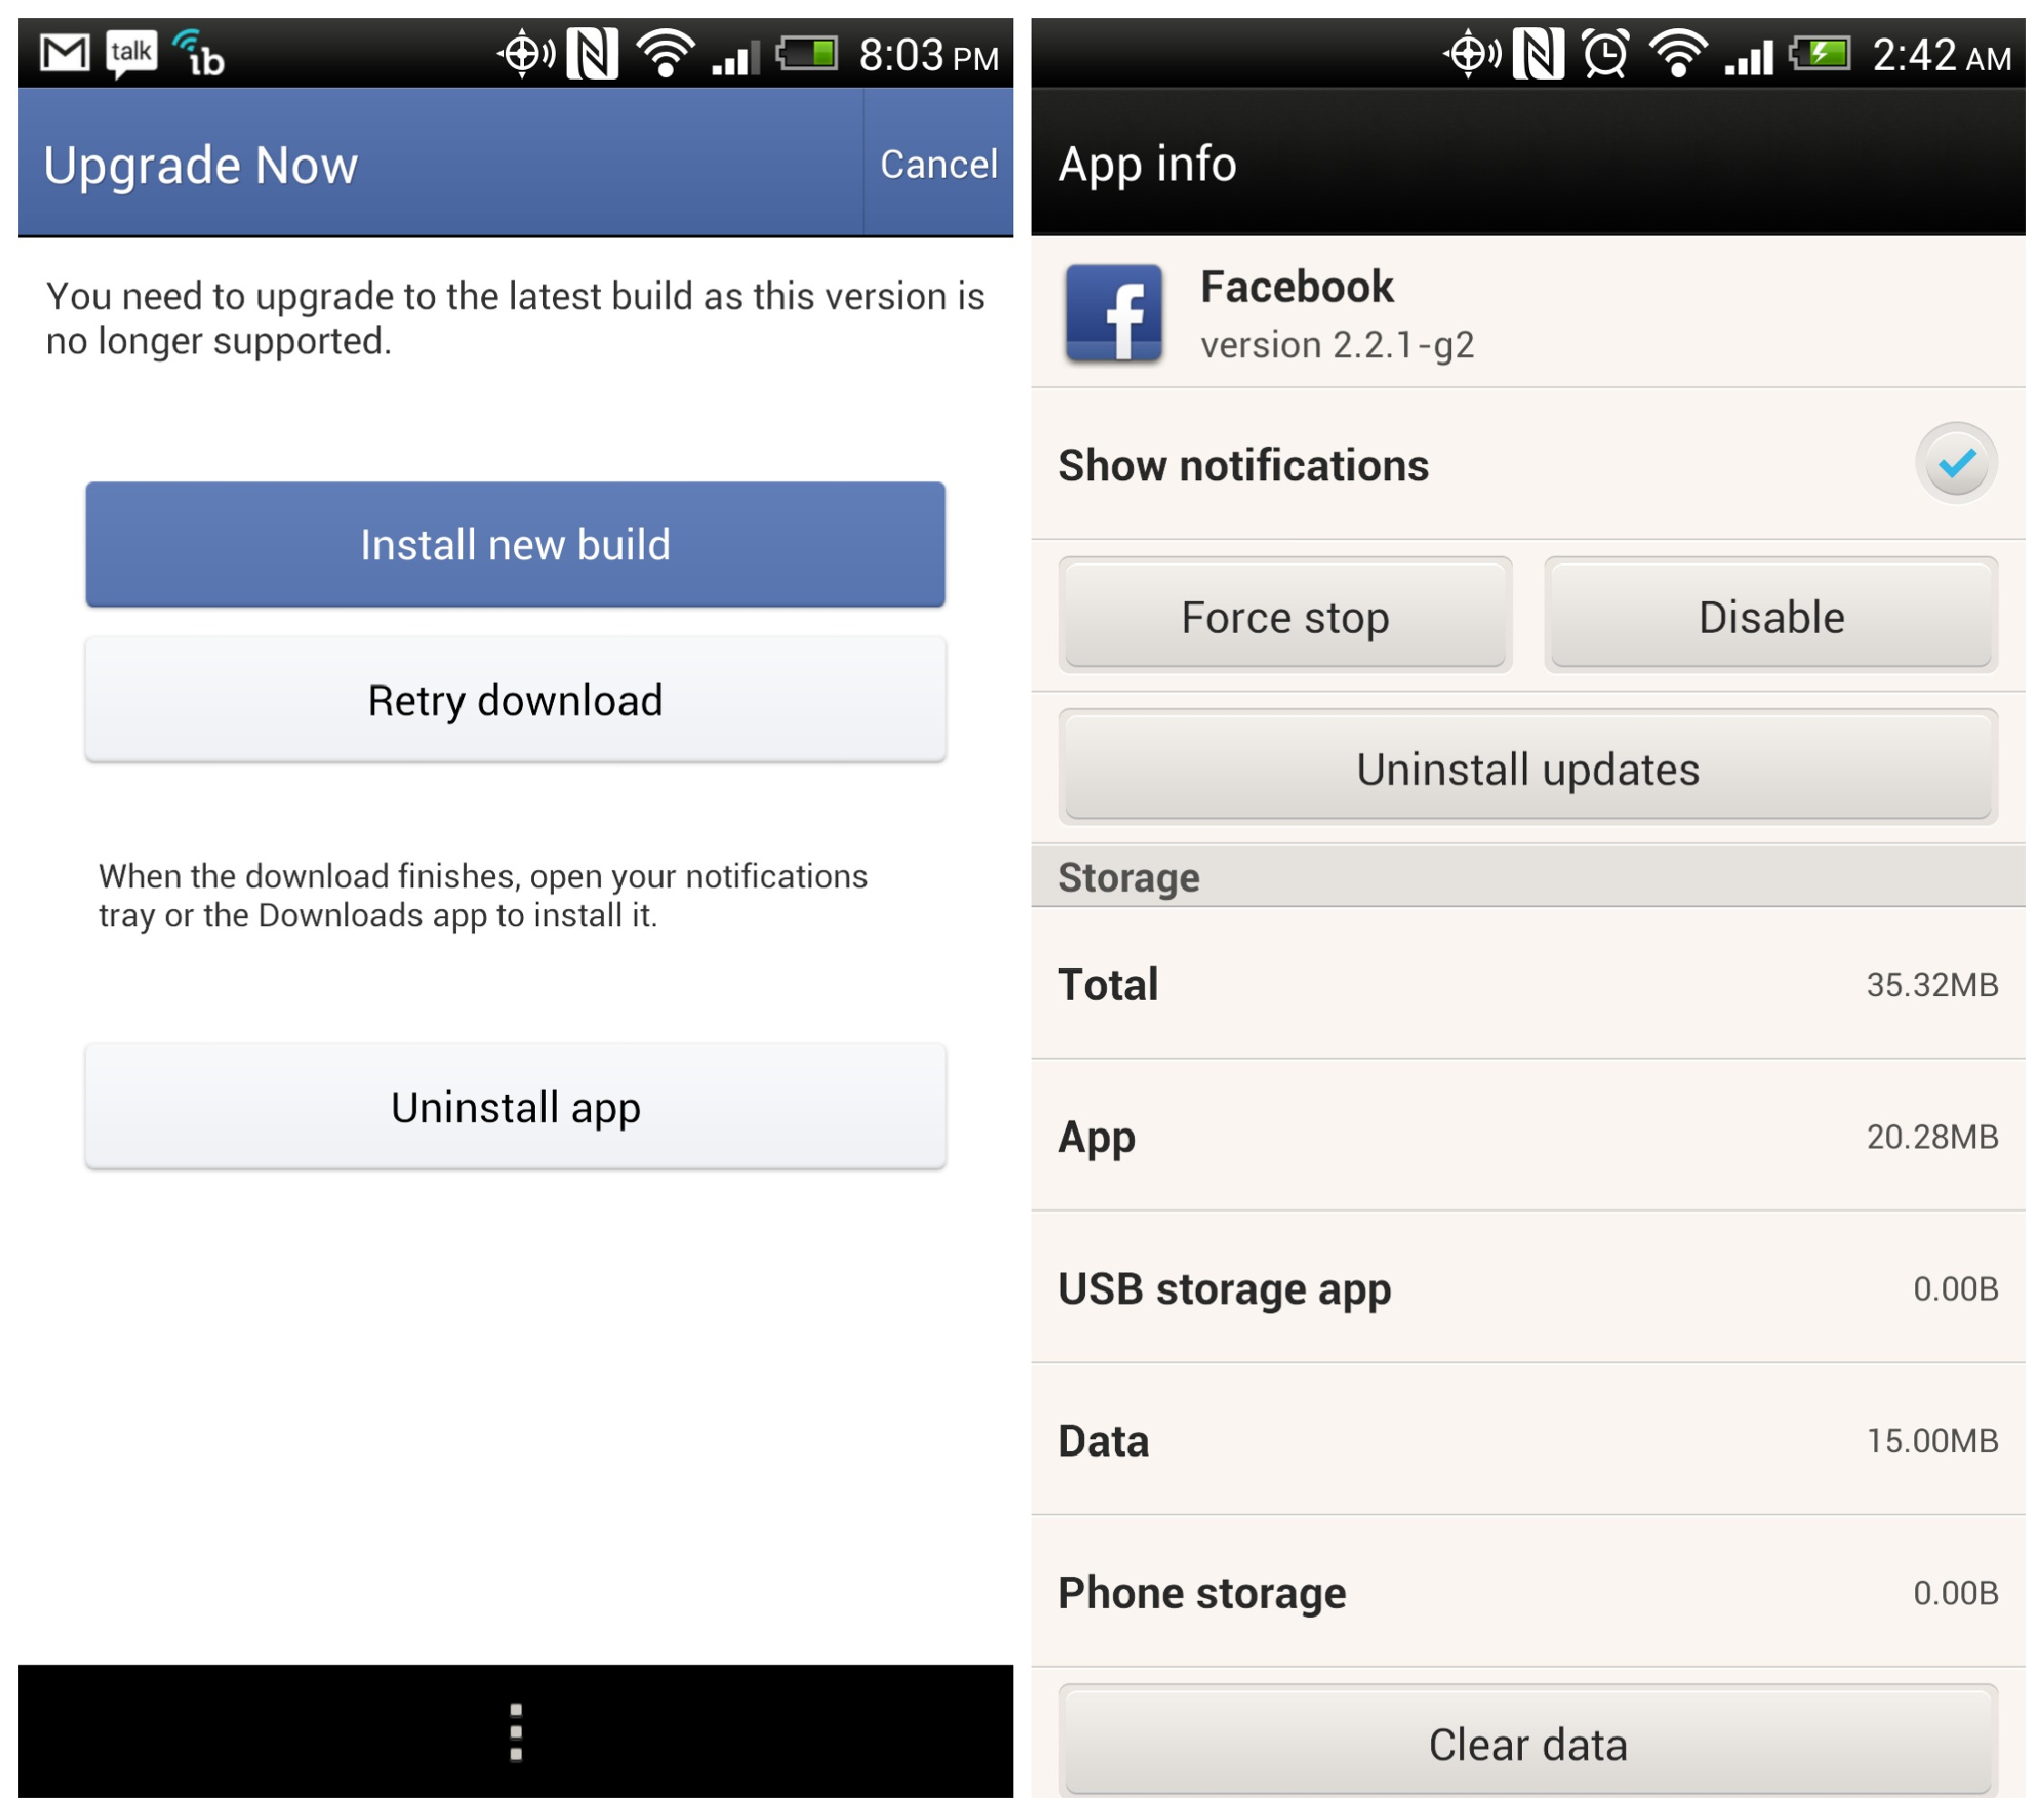 Facebook Skips Play Store In Latest Version, App Now